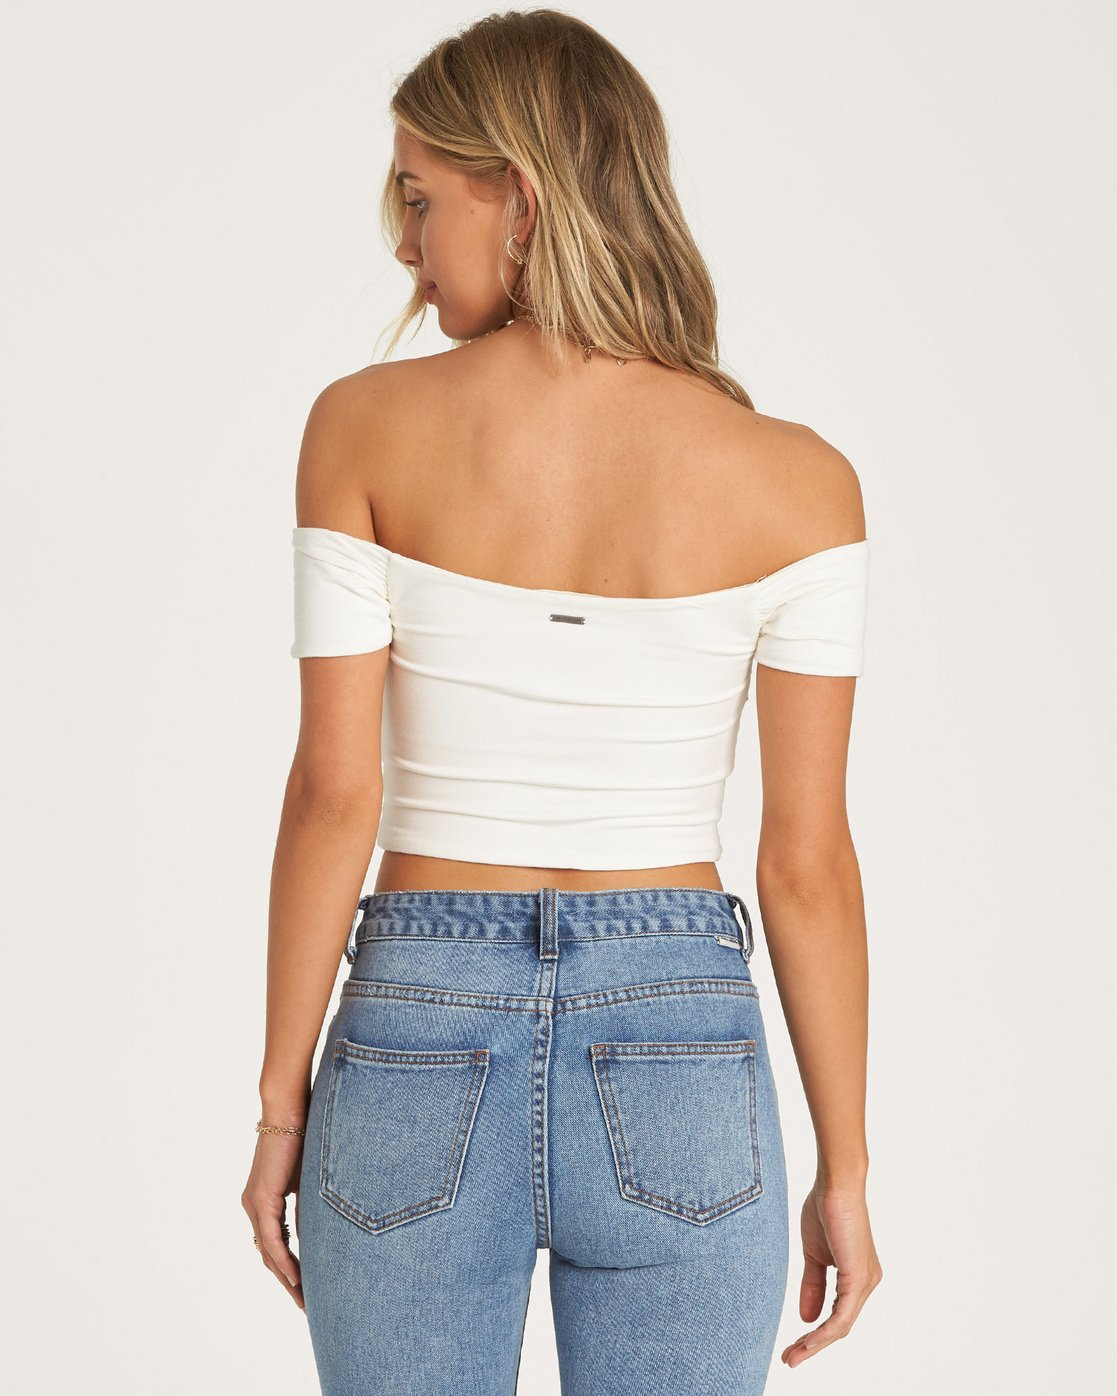 Billabong Hailey White Women's Crop Top